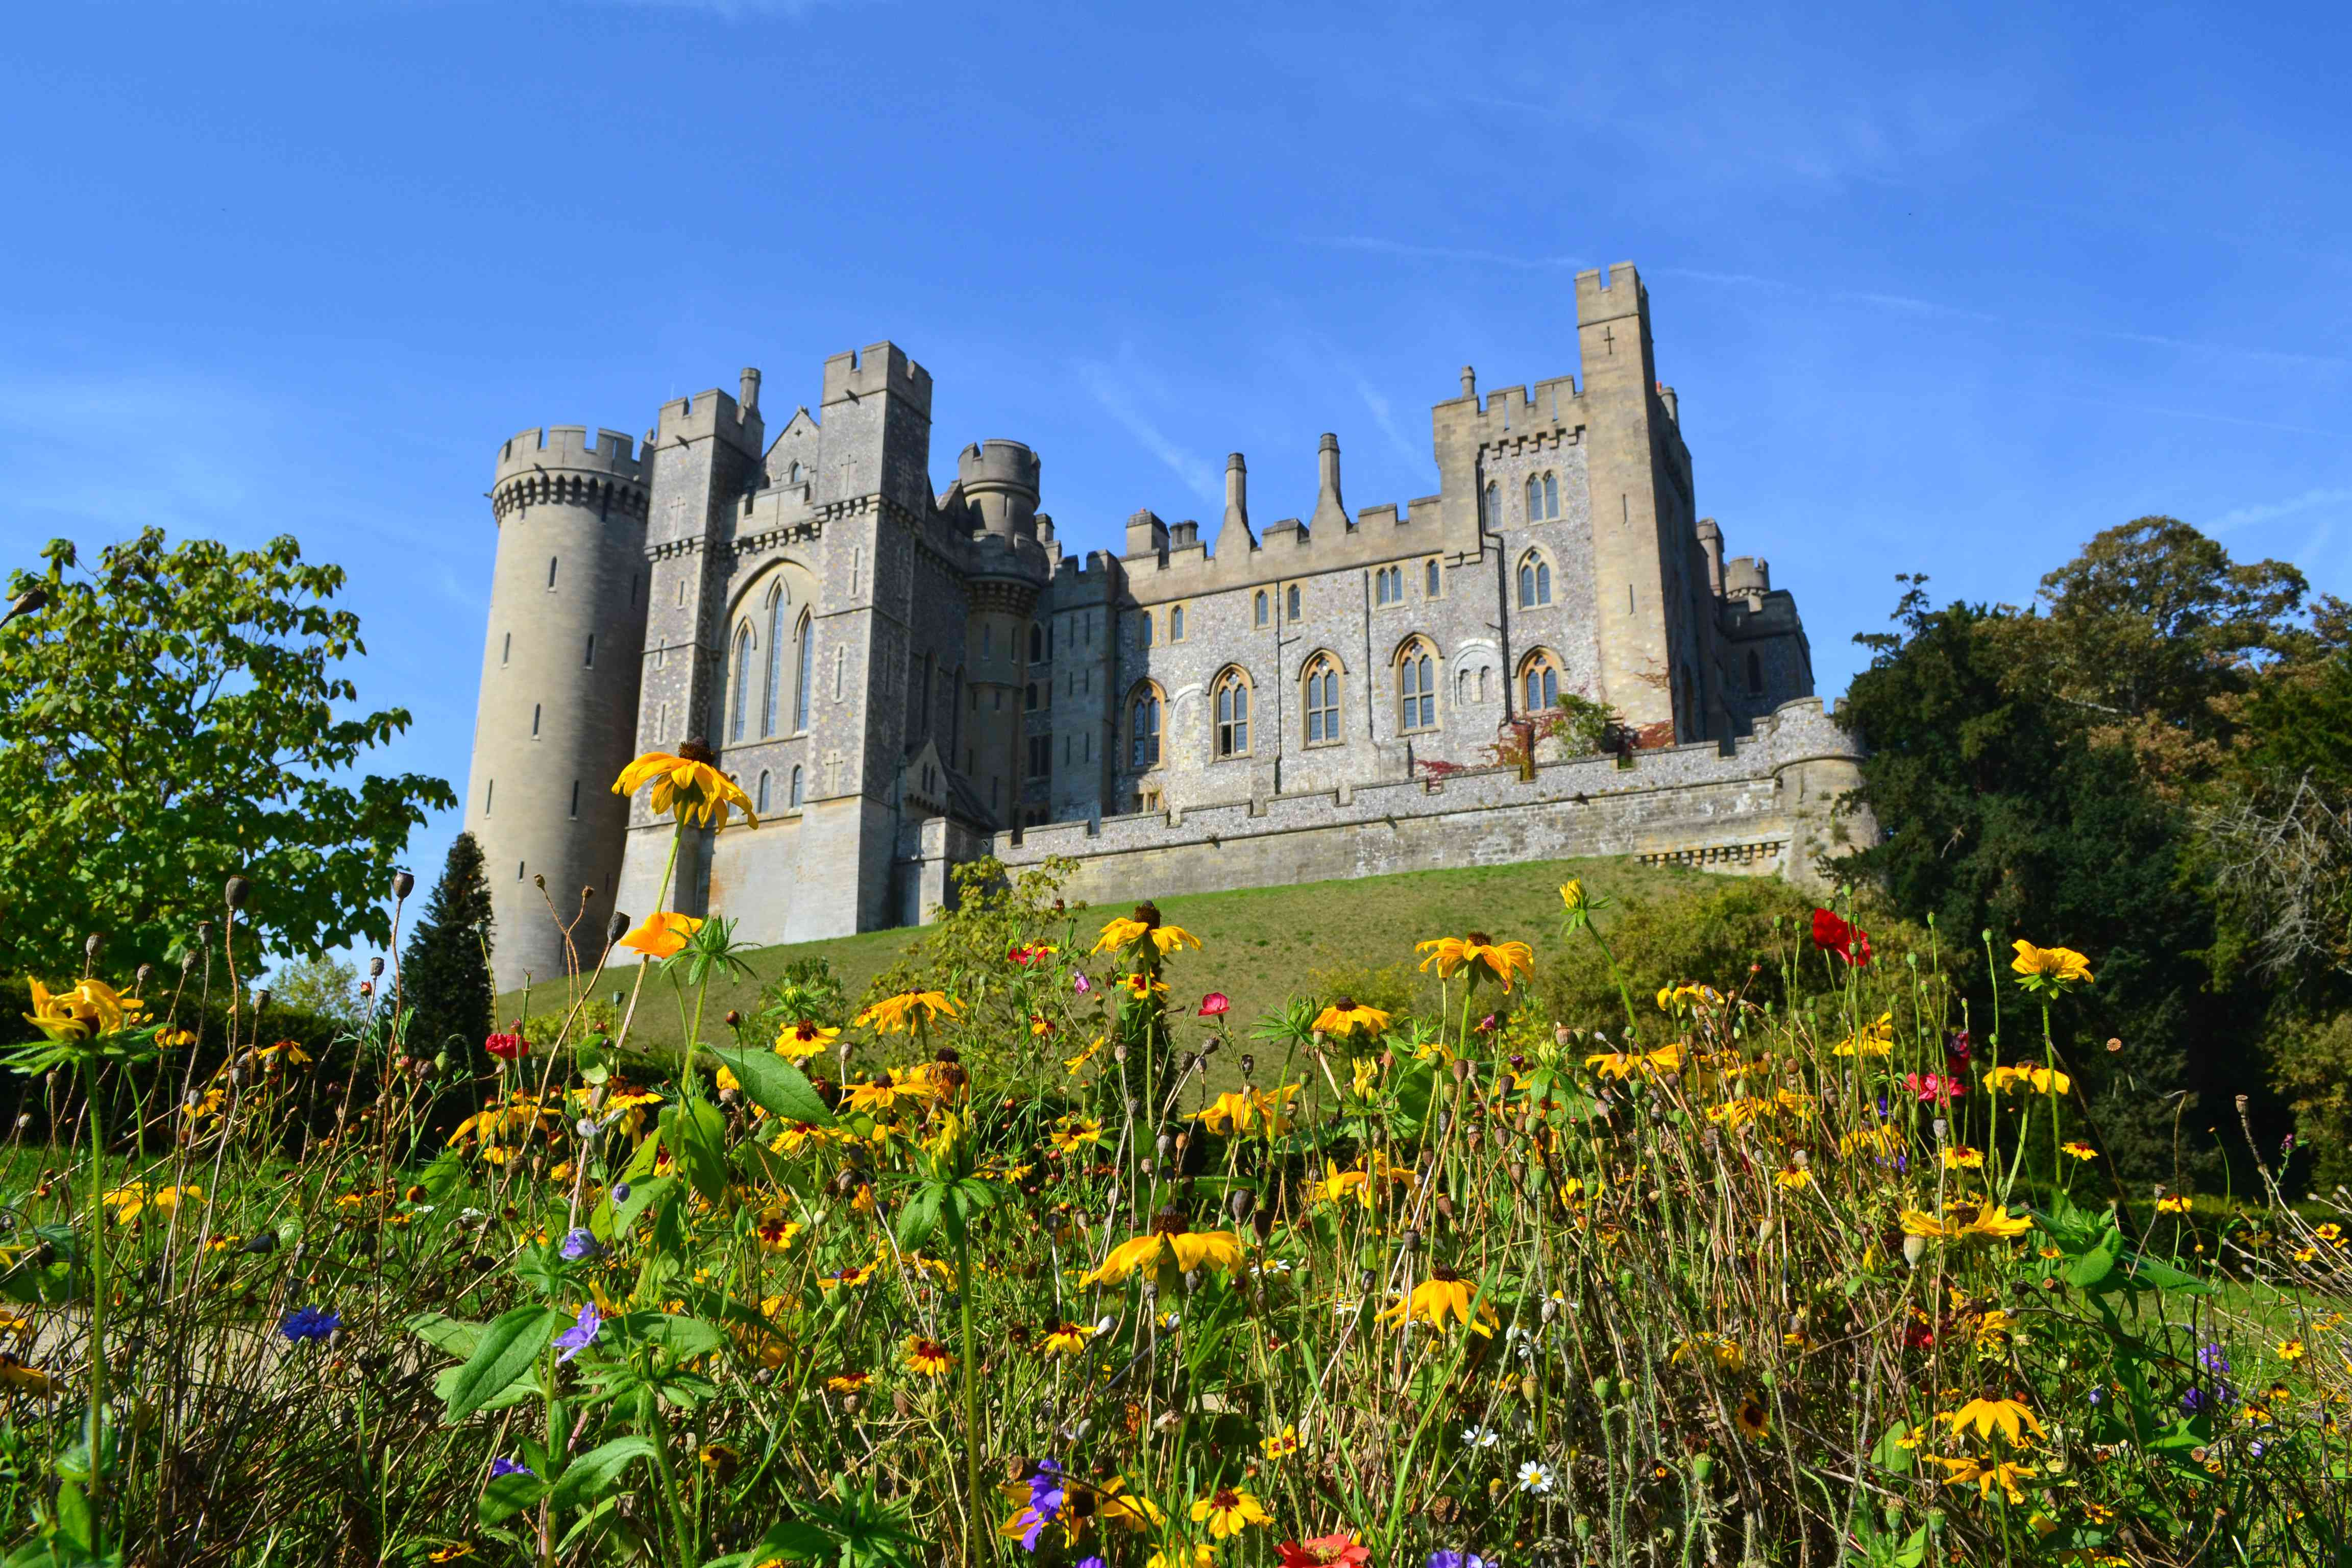 Arundel Castle Spring with flowers